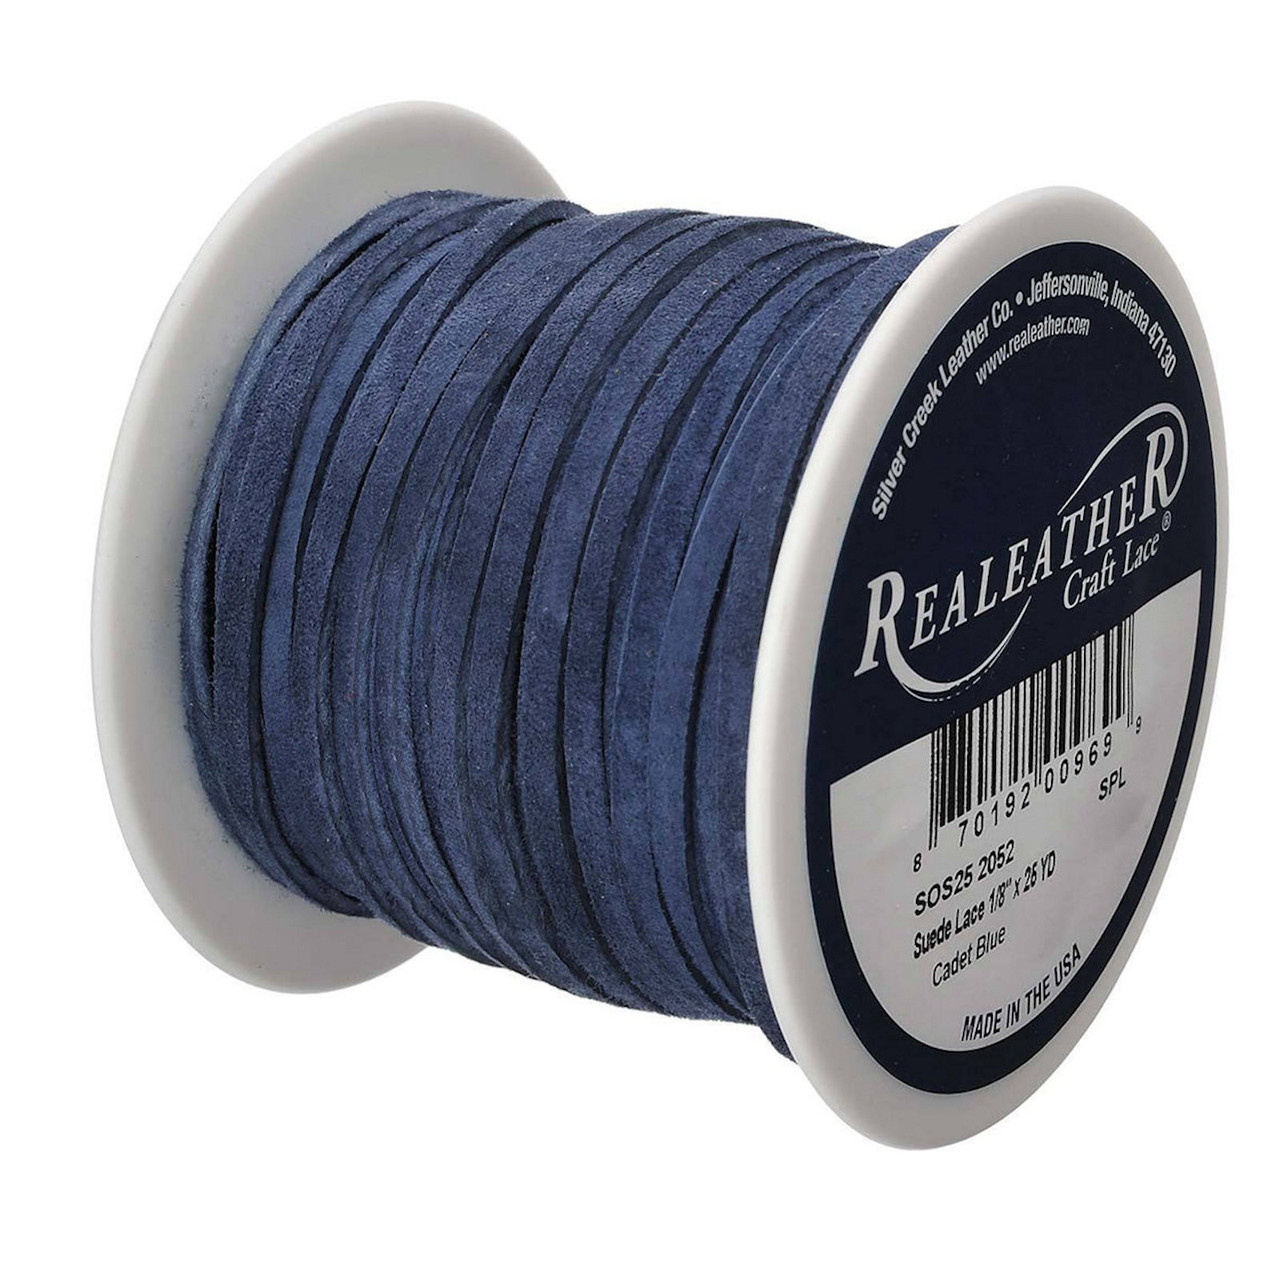 1 Spool Genuine Suede Leather Lace 1//8IN x 25YDS 1//8 Denim Blue